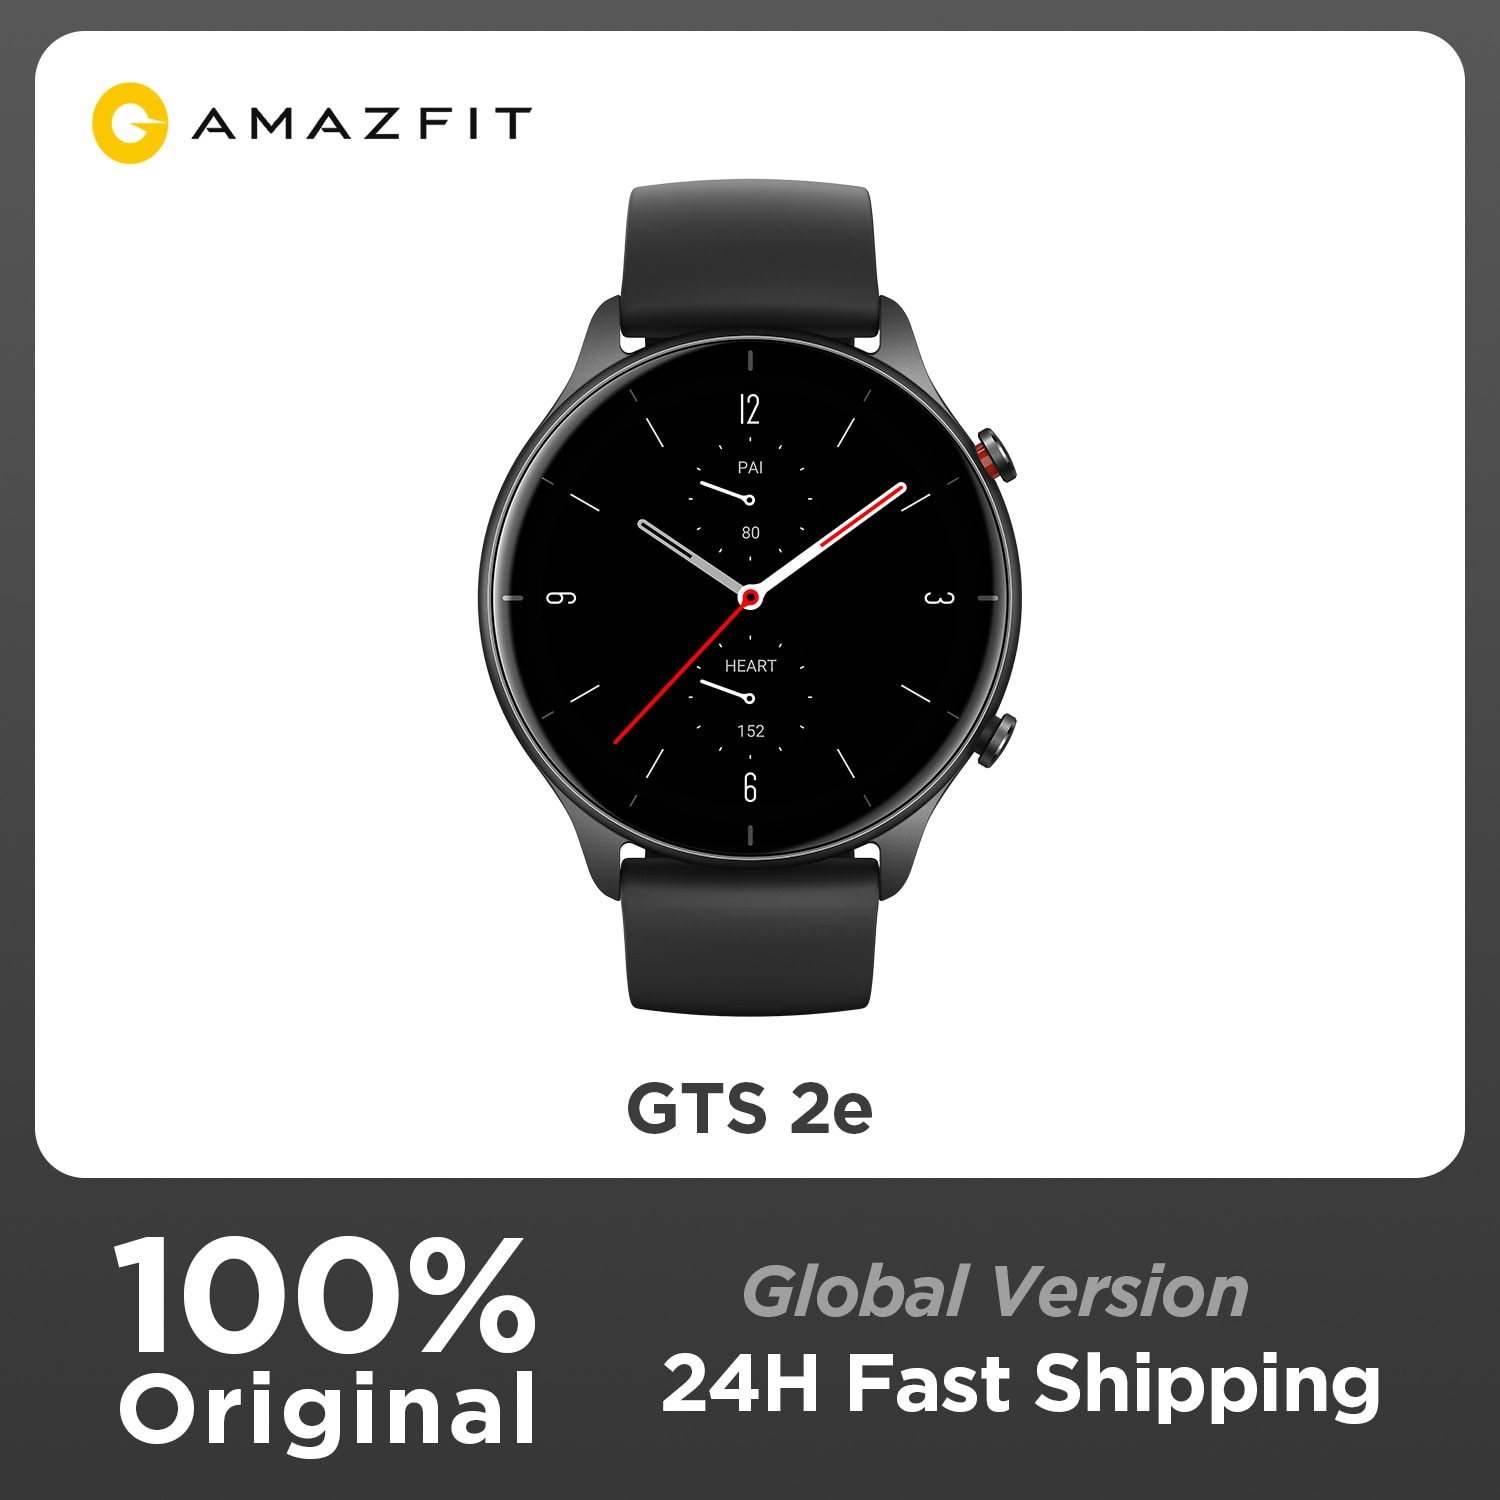 Review Original Amazfit GTS 2e Smartwatch Alexa Built-in 90 Sports Modes GPS intelligent Smart Watch for Men Women Android iOS Phone